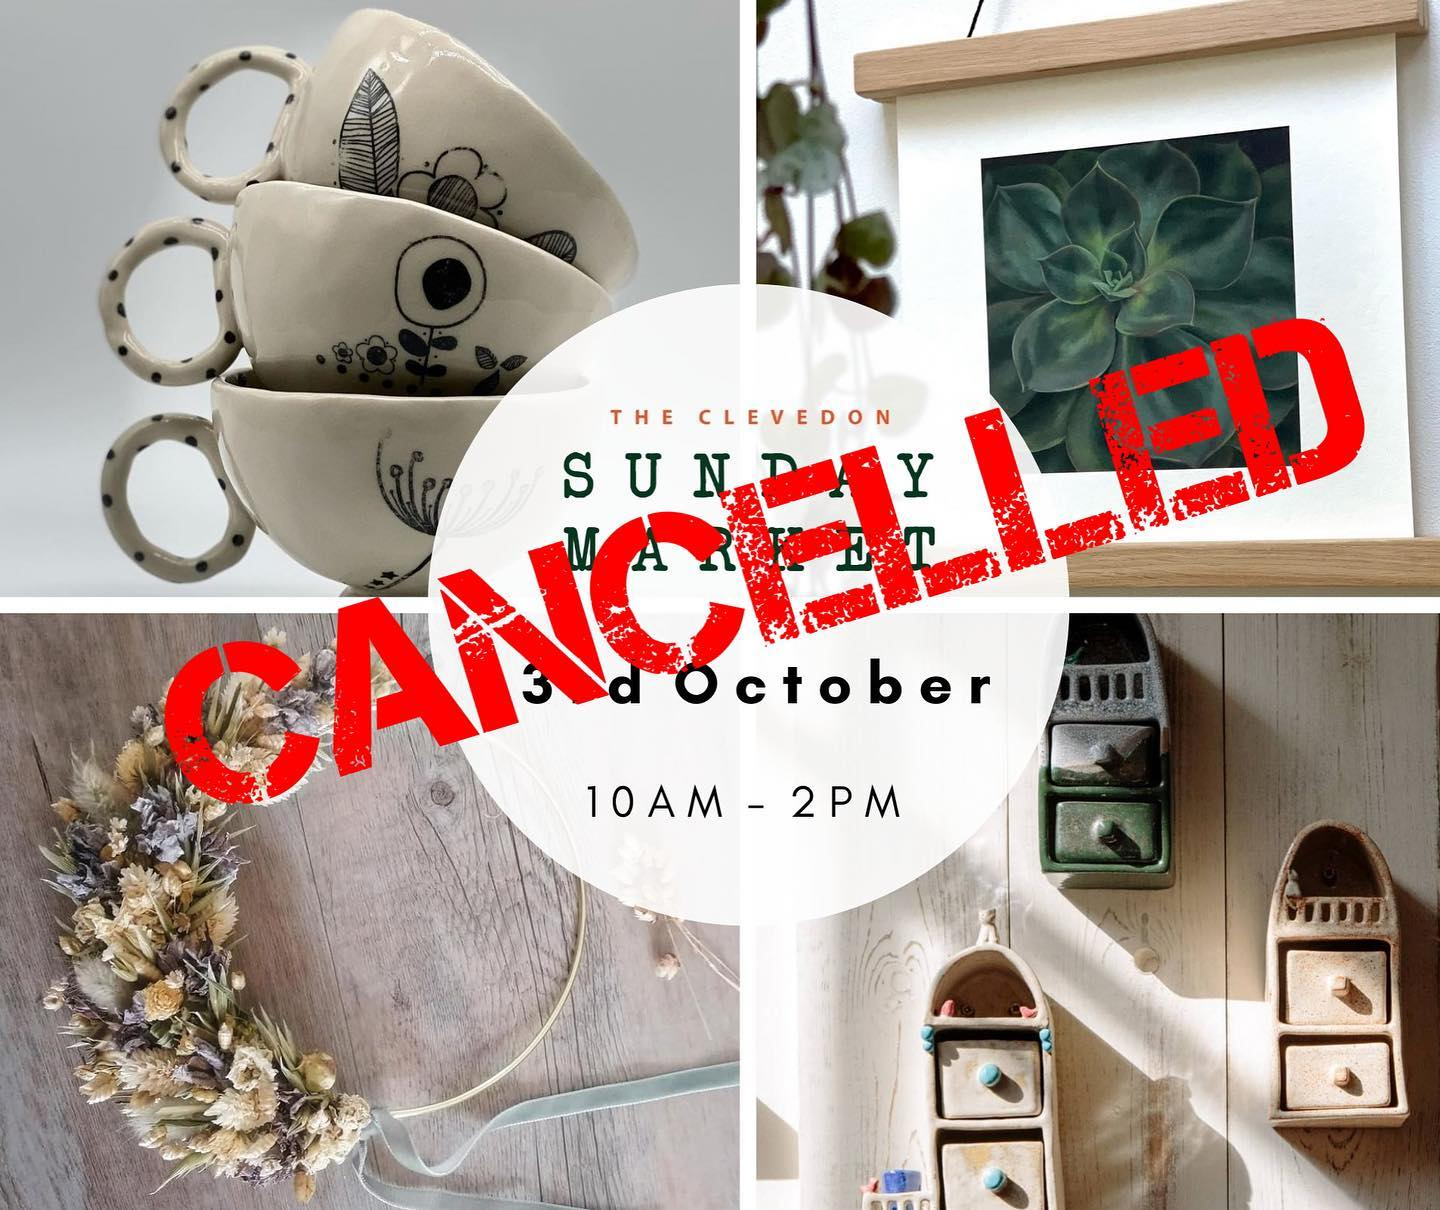 Due to the forecast of extremely high winds tomorrow, we are sad to let you know that tomorrow's @clevedonsundaymarket has been cancelled. You can still shop the independent businesses over on the virtual market Facebook group and we will share details of what we have for sale throughout the day tomorrow. The group will remain open for browsing and shopping until Friday 8th October https://www.facebook.com/groups/1580460532130846